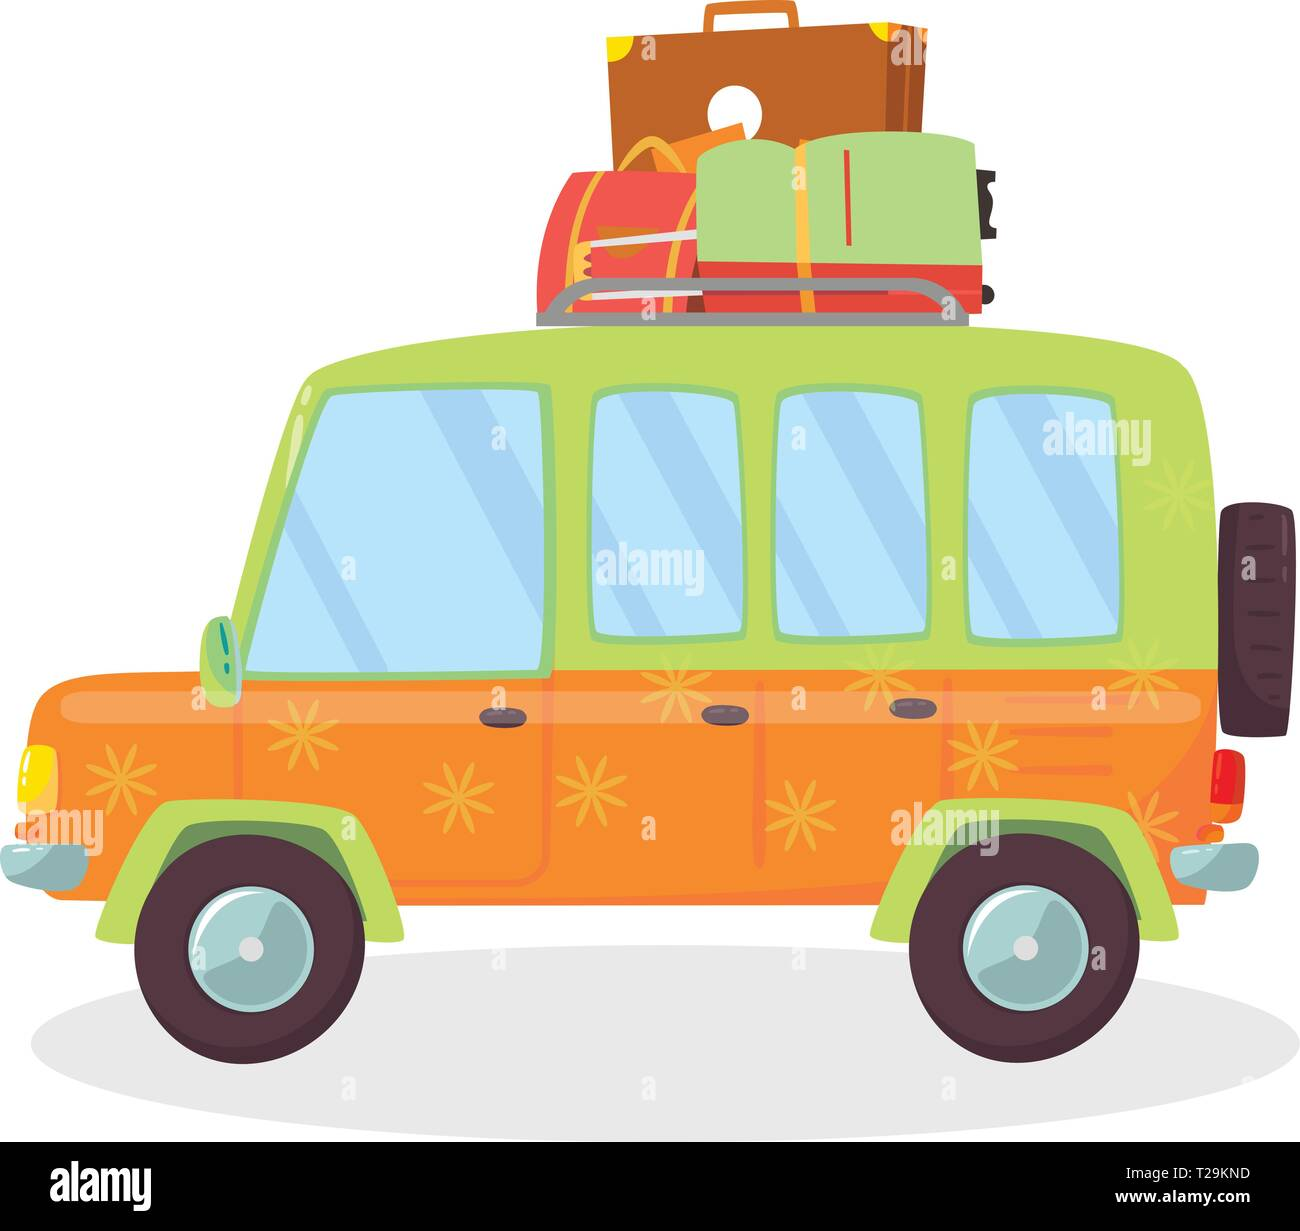 Orange, Green Colored Modern Car with Suitcases on Roof Isolated on White Background. Side View of Comfortable Coupe Automobile for Family Traveling.  - Stock Vector